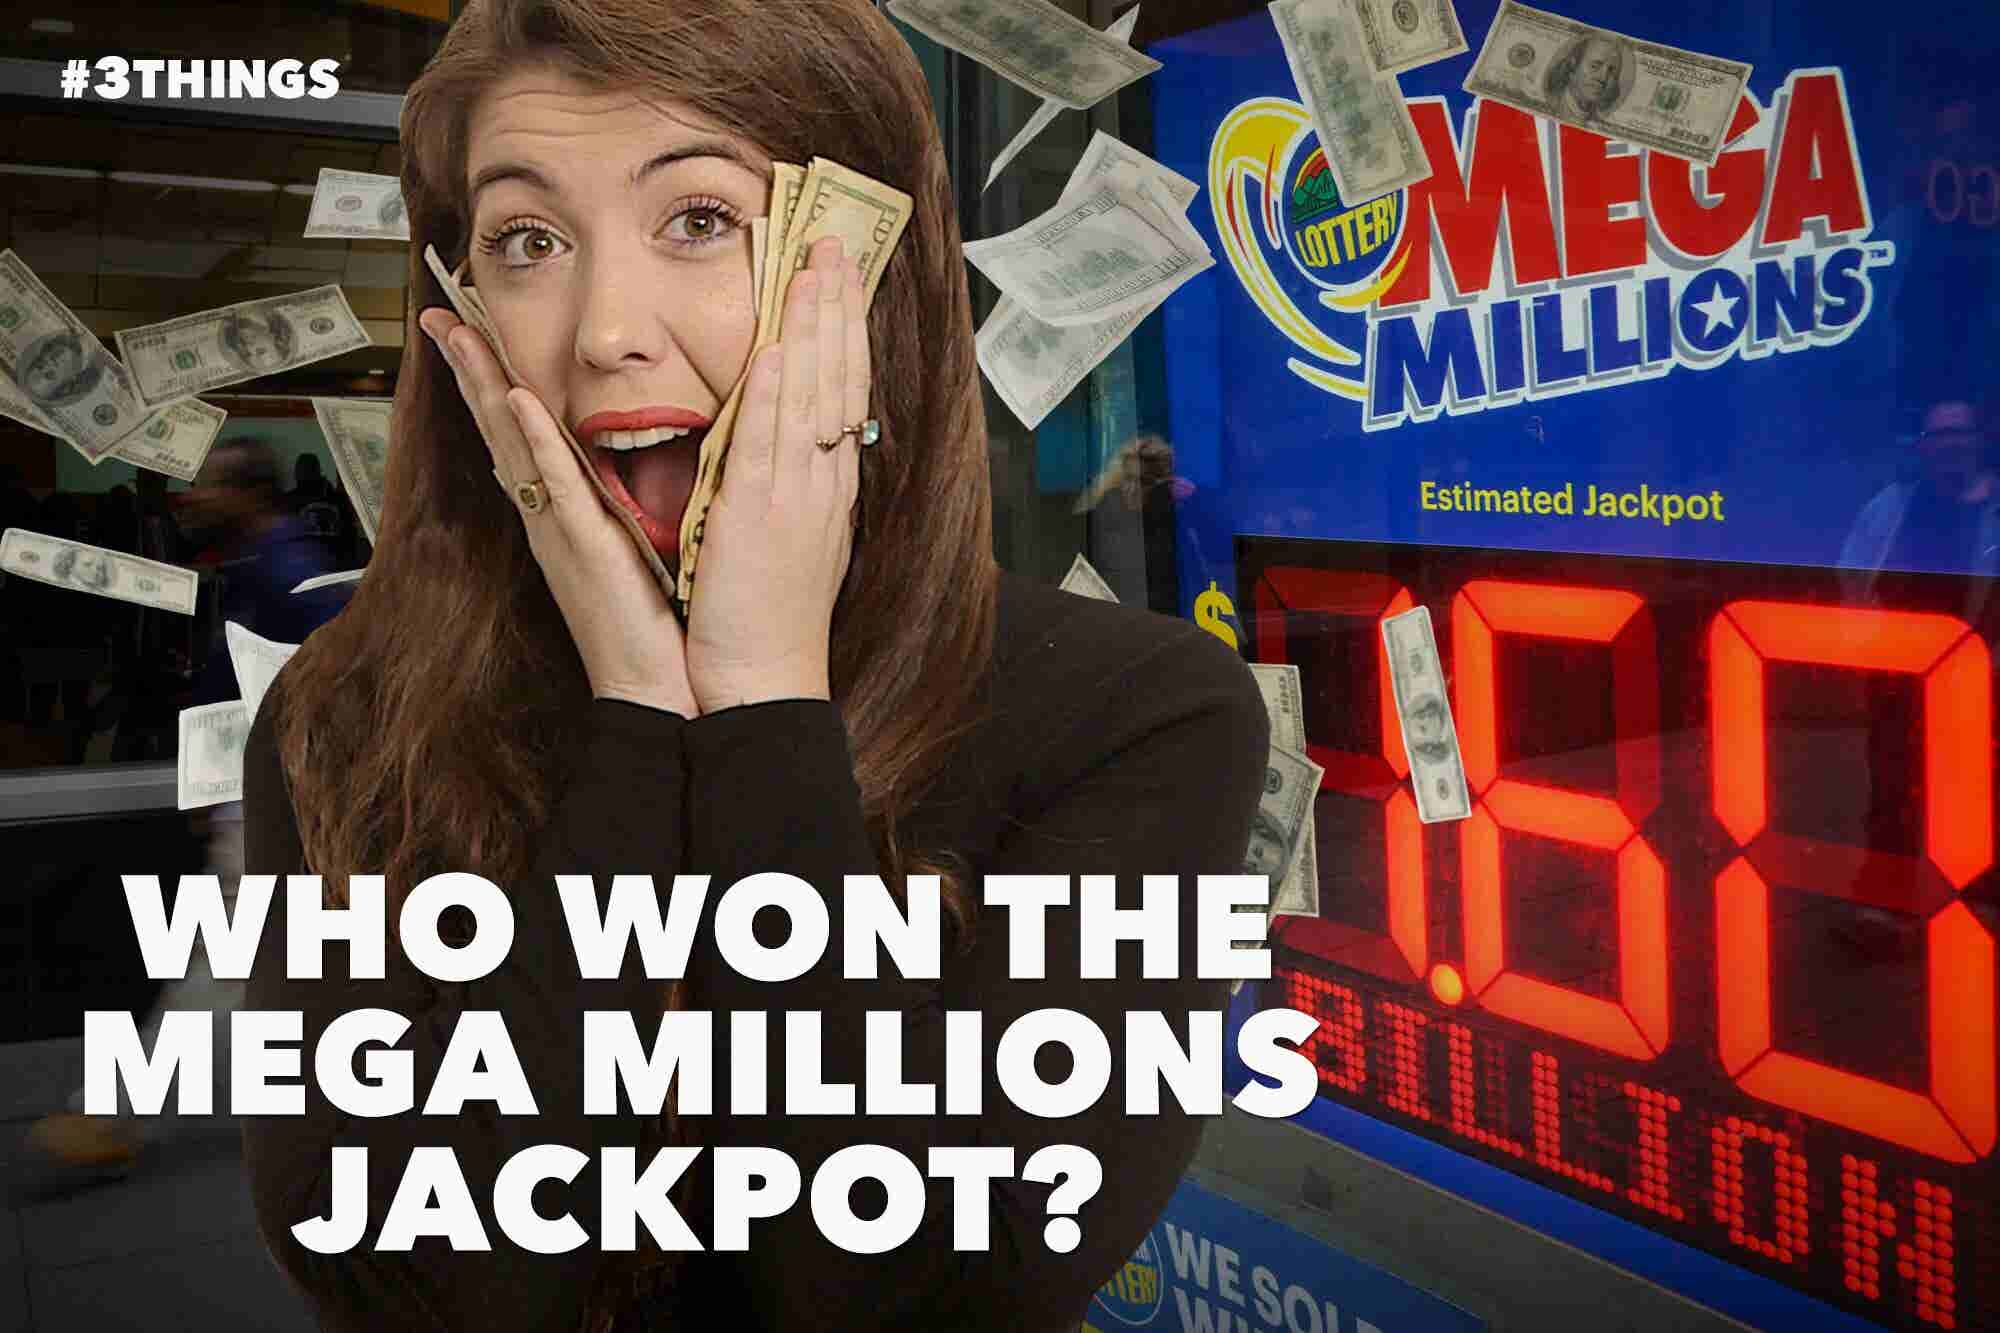 60-Second Video: Who Won the Mega Millions Jackpot?